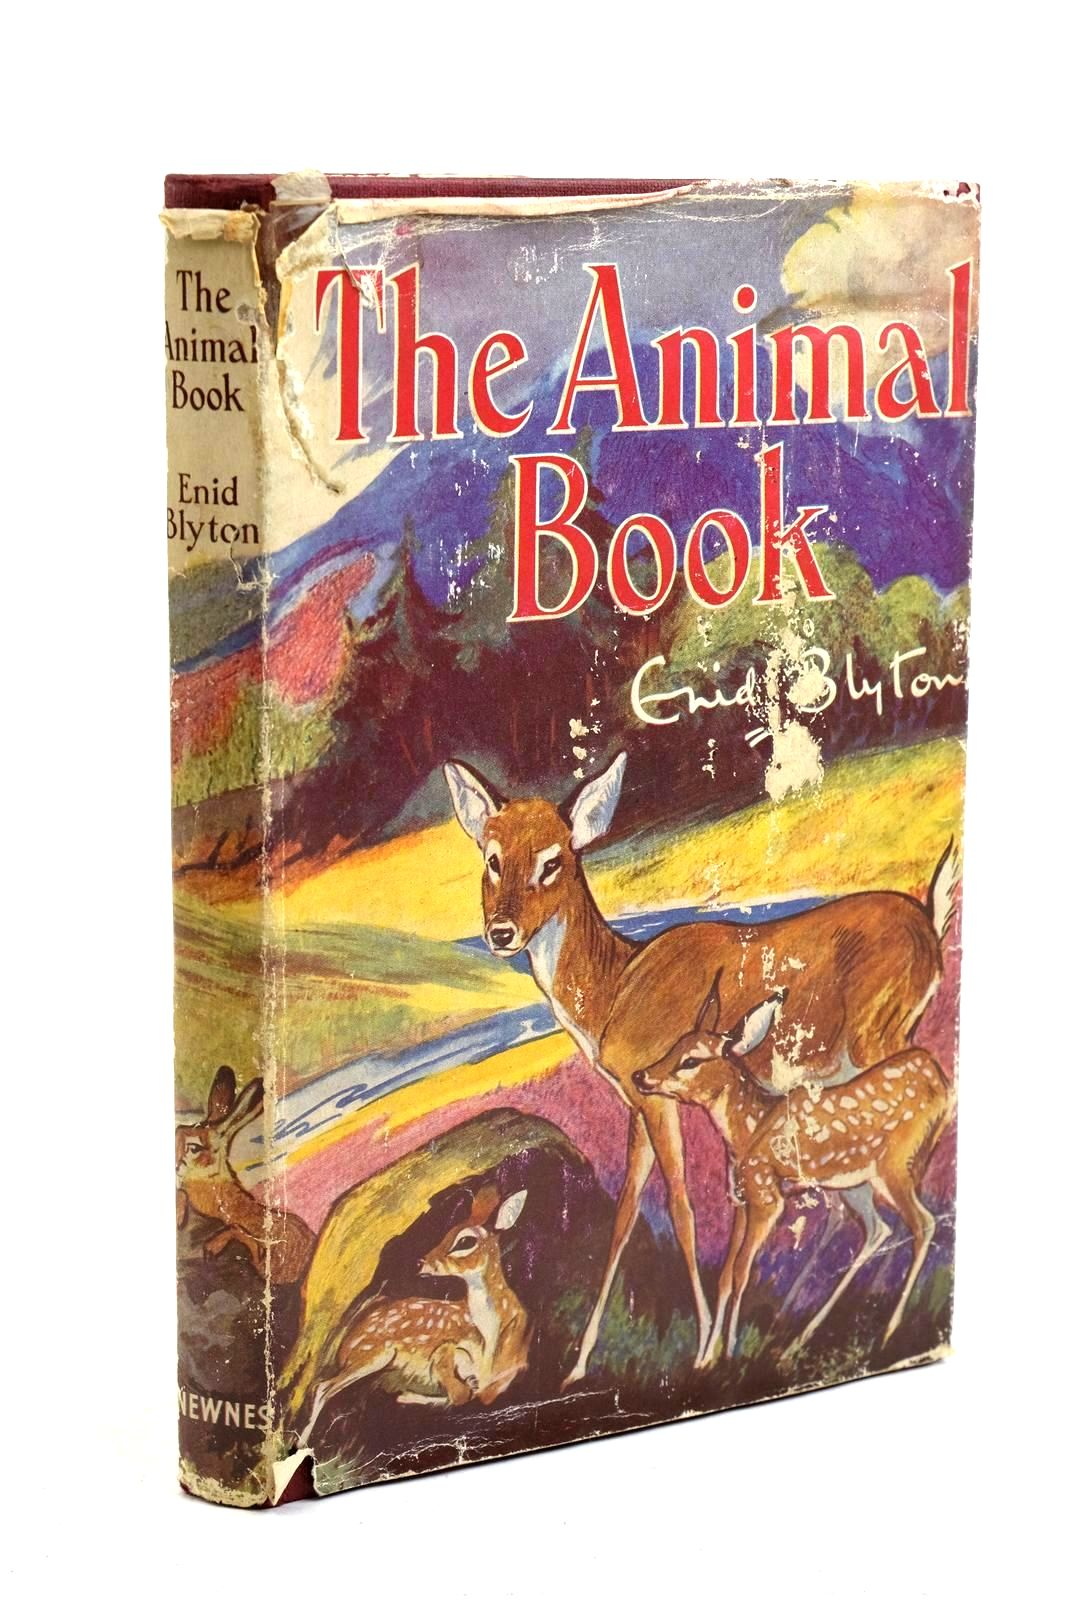 Photo of THE ANIMAL BOOK written by Blyton, Enid illustrated by Nixon, Kathleen published by George Newnes Limited (STOCK CODE: 1320712)  for sale by Stella & Rose's Books